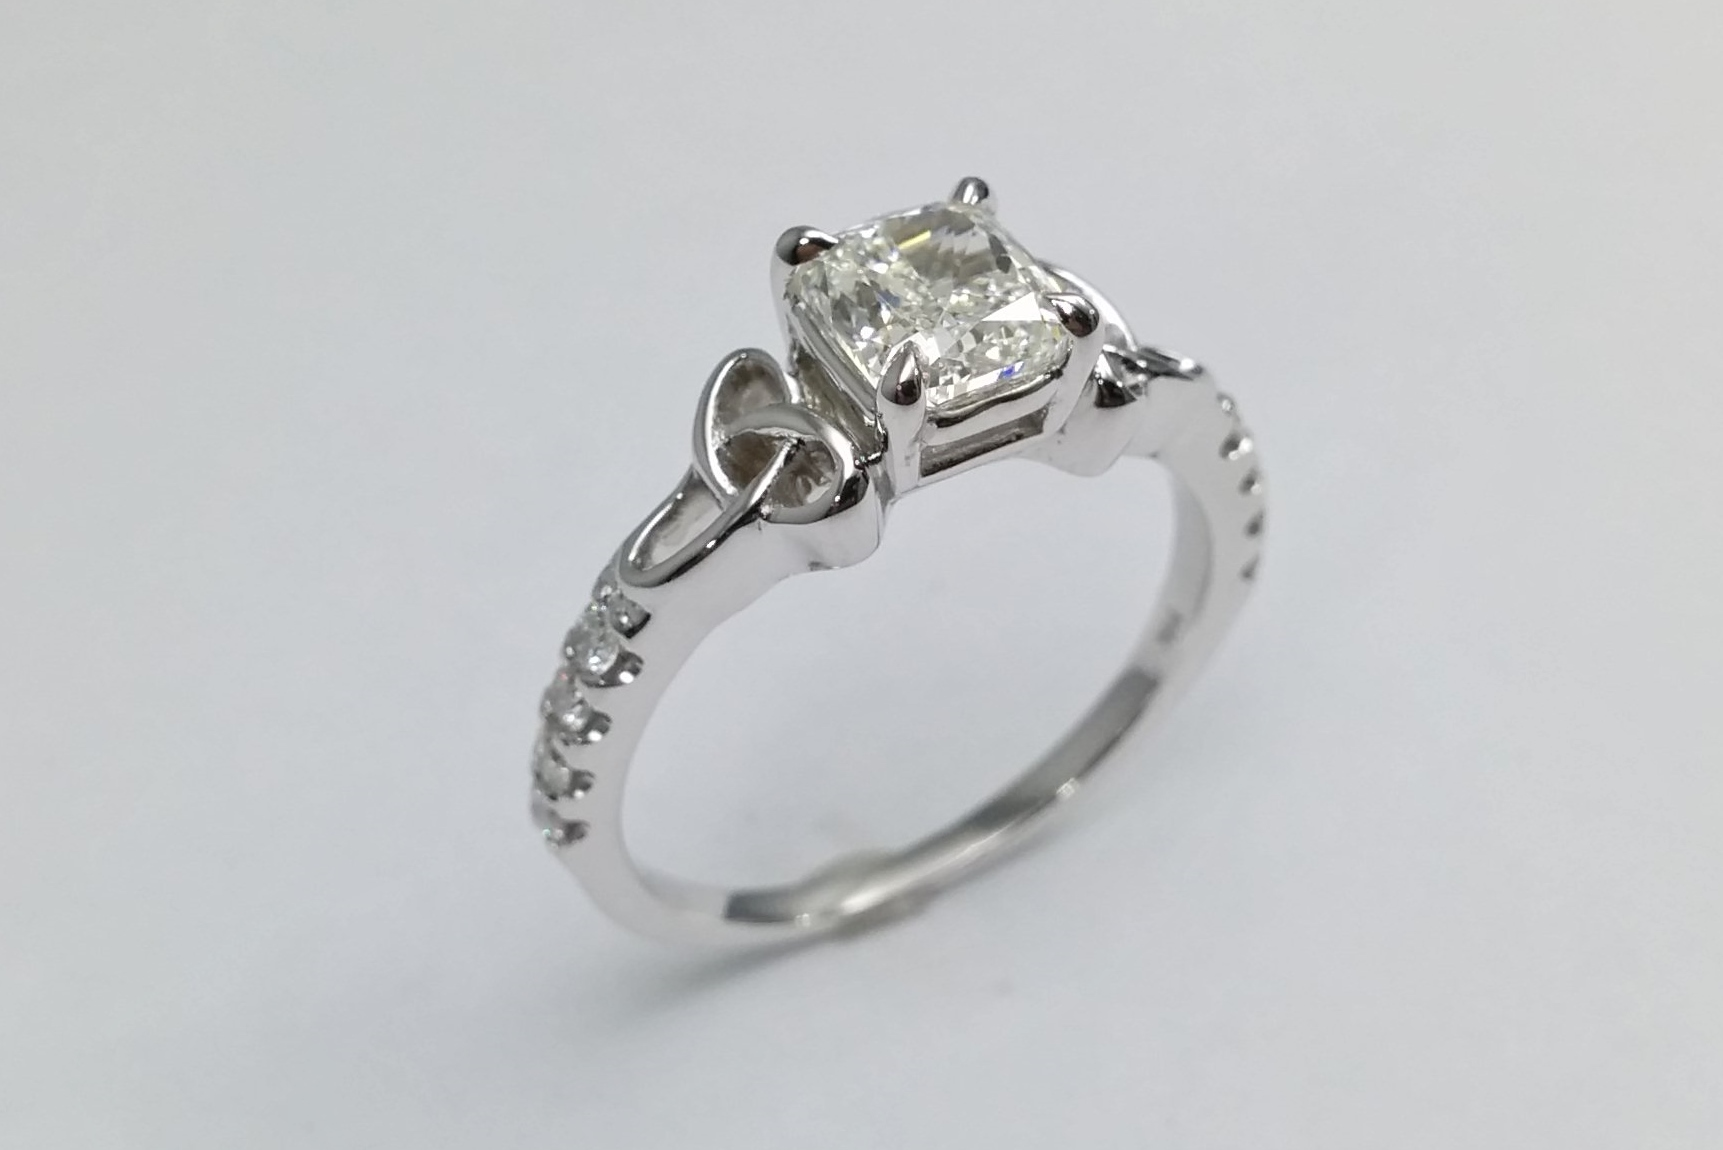 Cushion Diamond Celtic Knot Engagement Ring in 14K White Gold Band